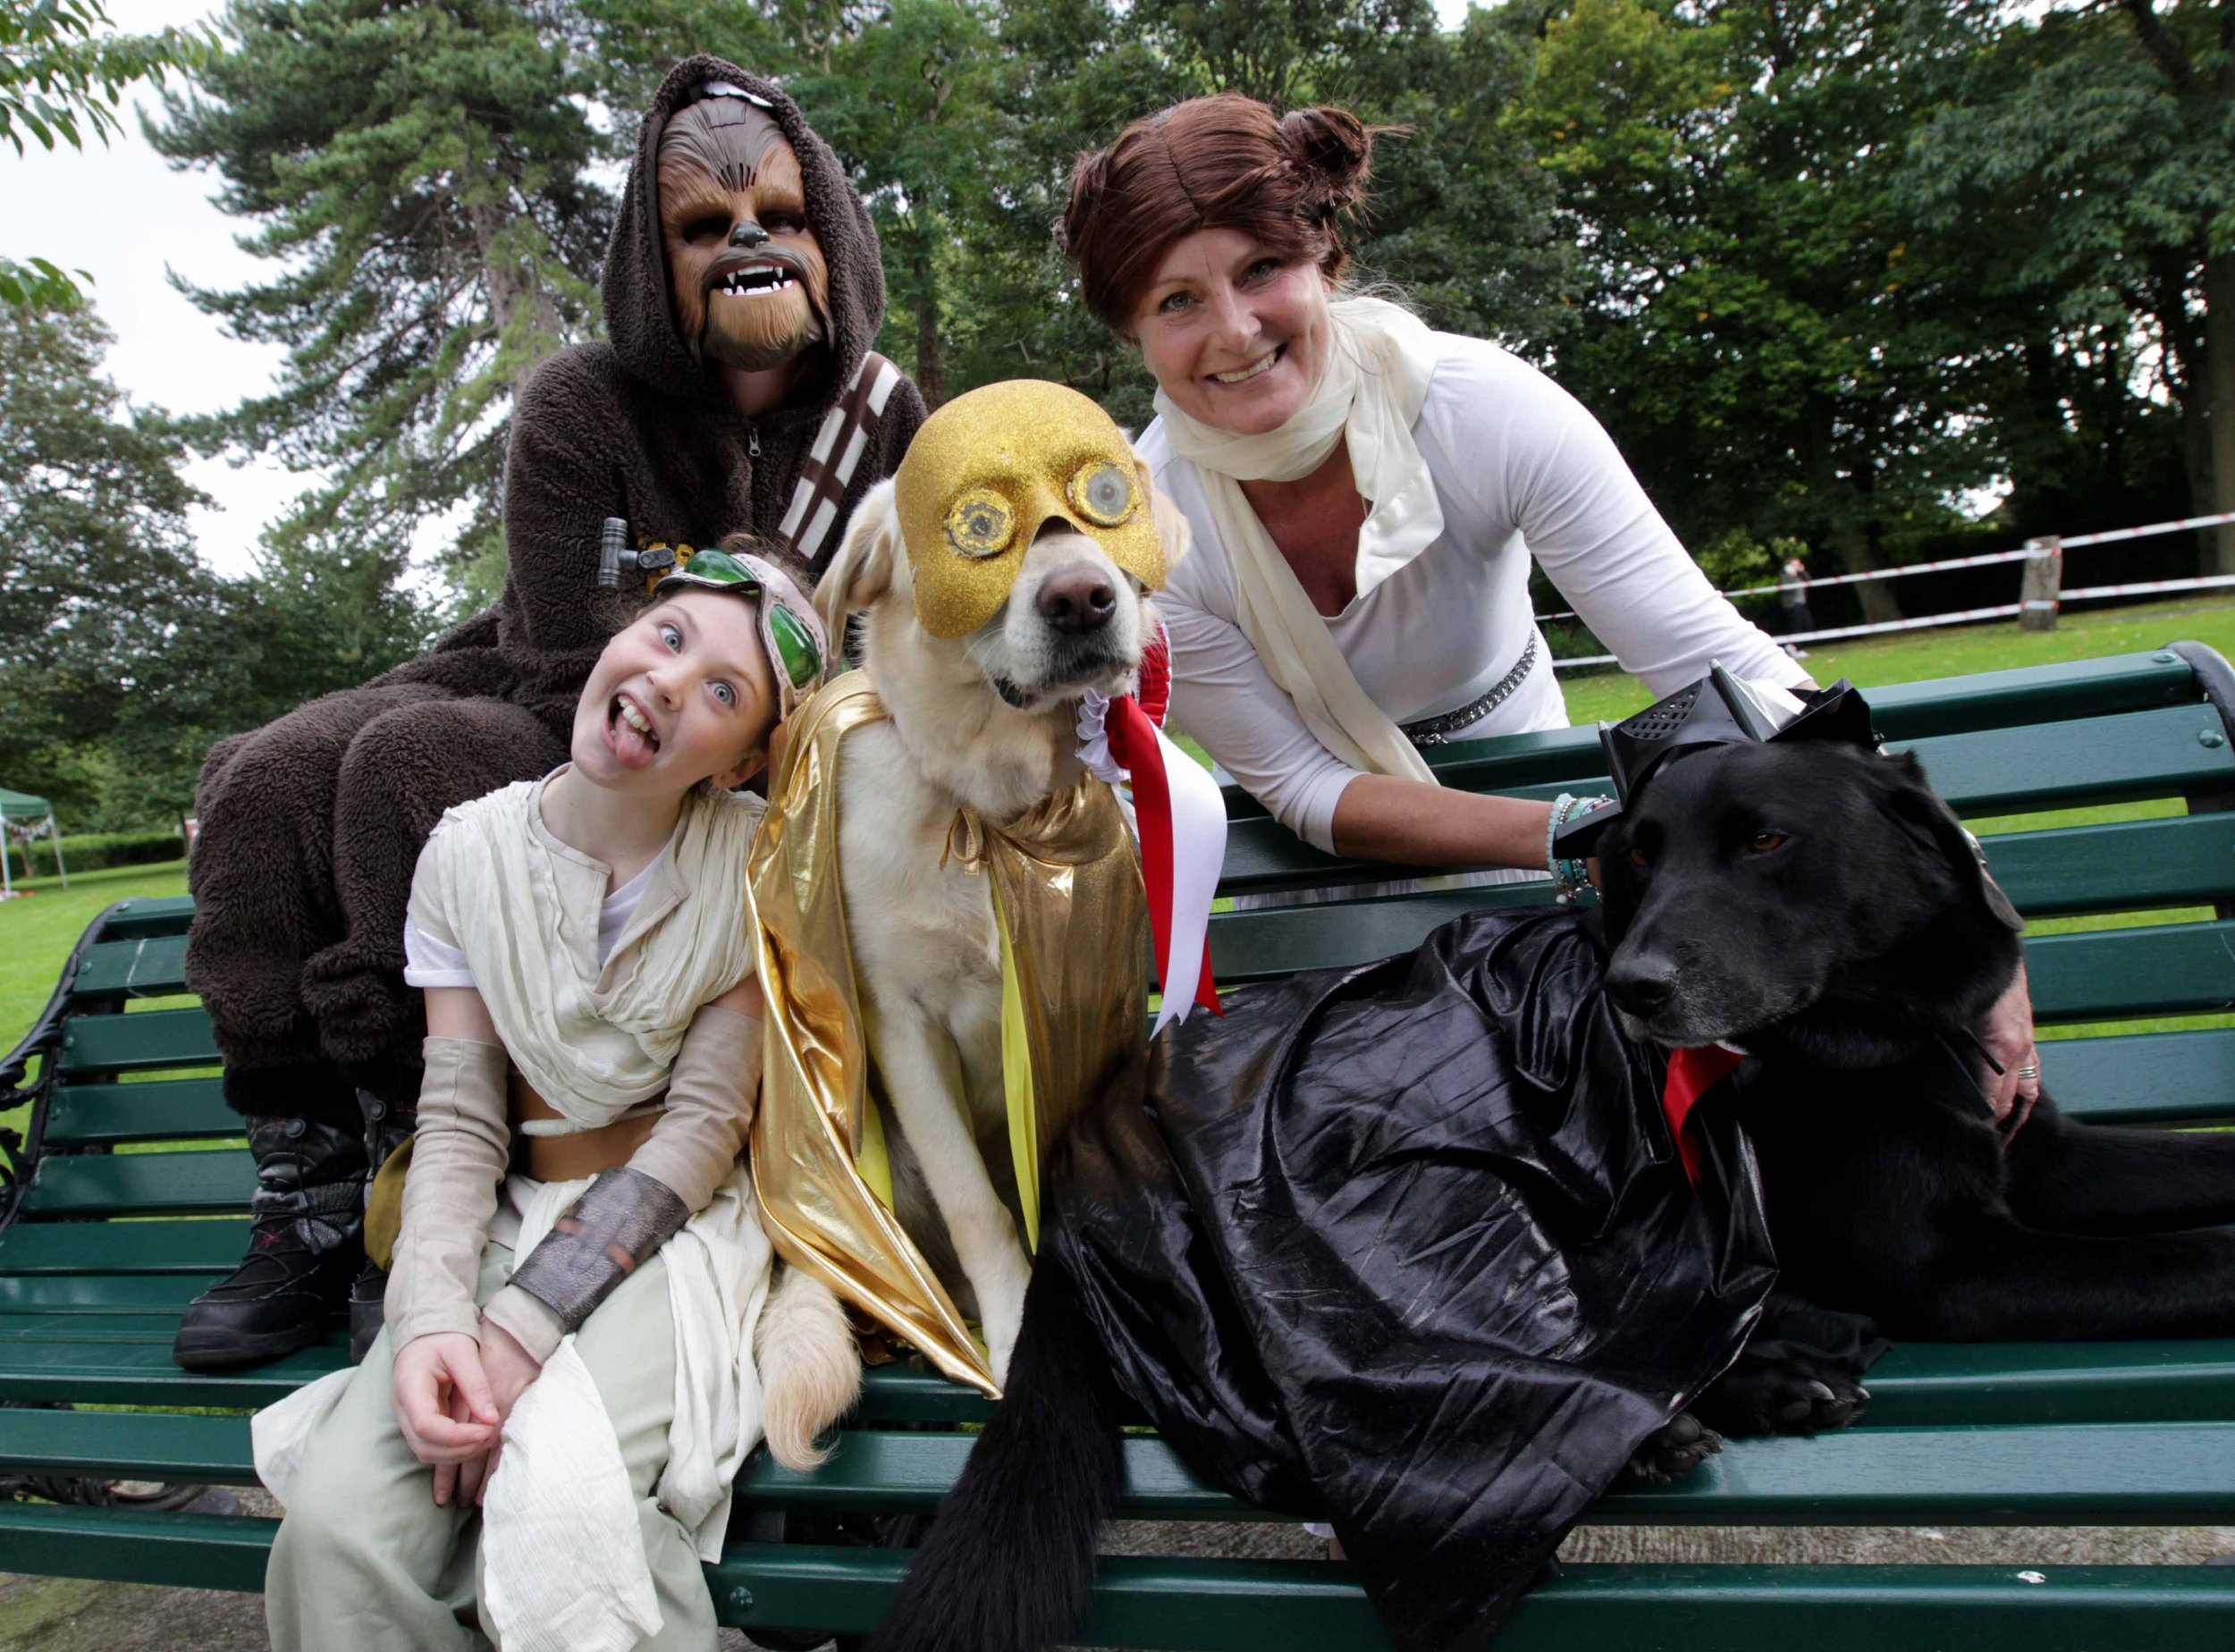 1st RUNNER UP: Holly 'CP3O' and her Star Wars gang!